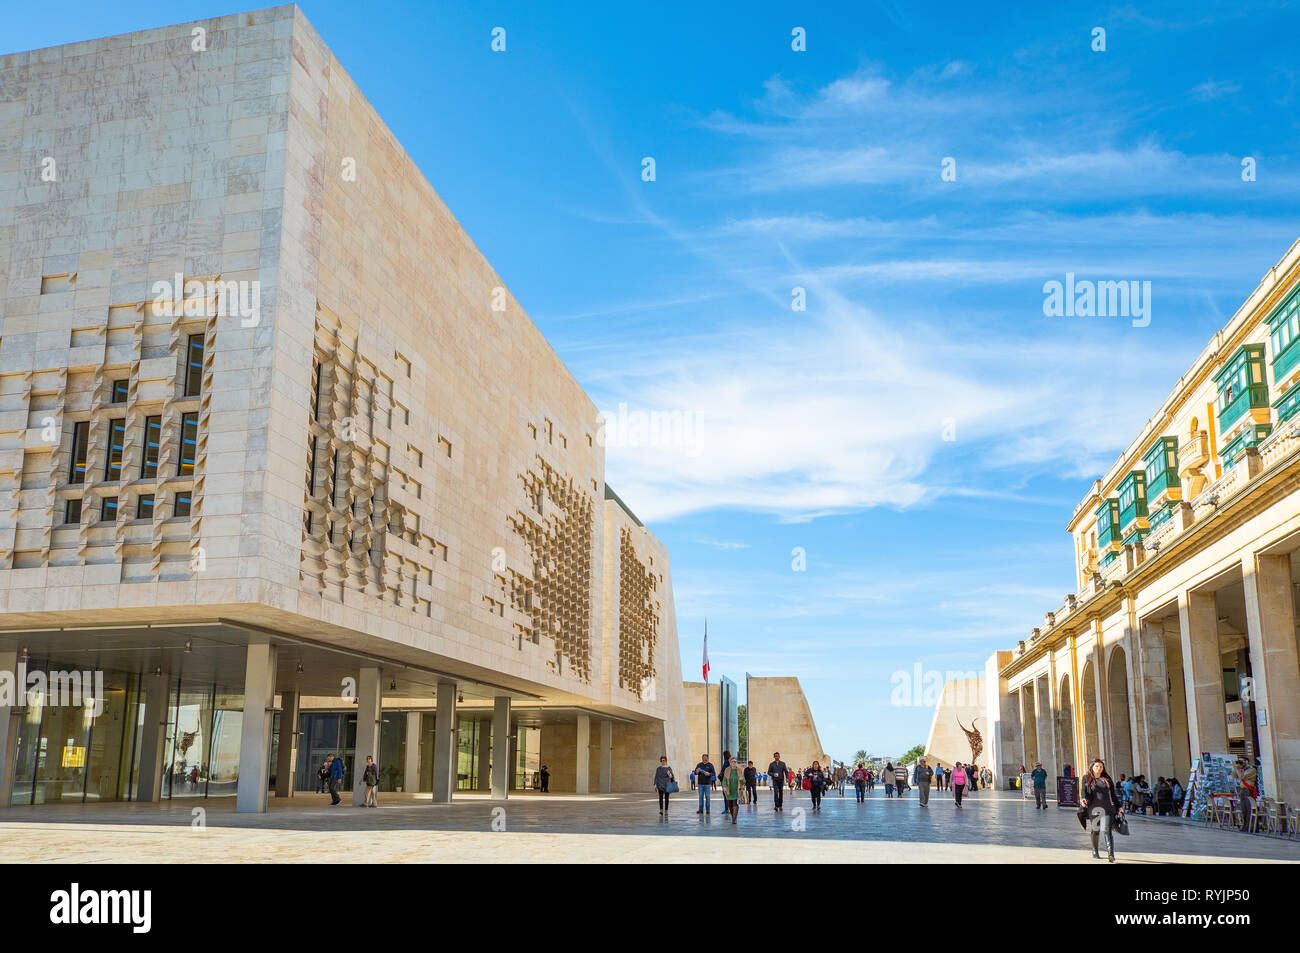 Malta, Valletta, People in the Republic square with the new Parliament Building on the left - Stock Image